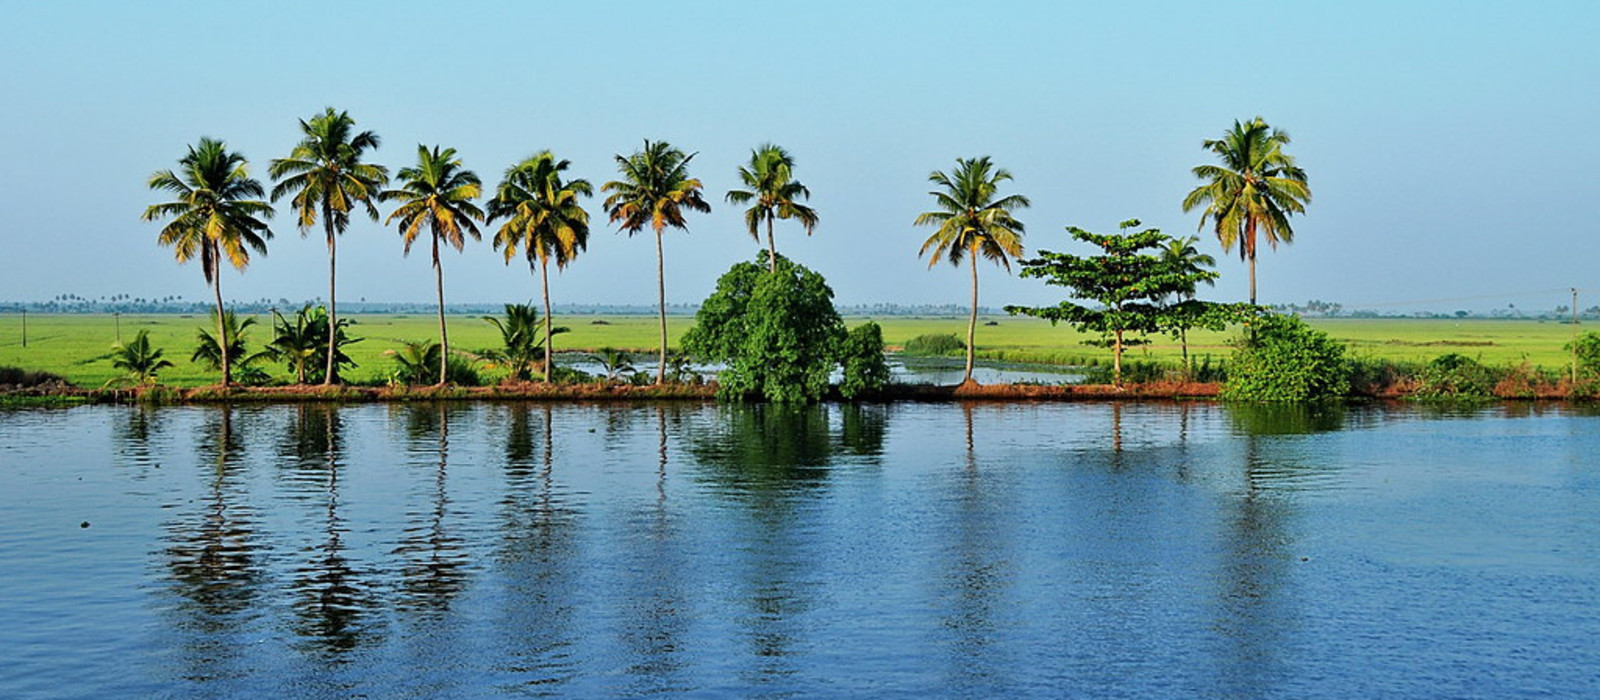 Destination Backwaters of Kerala South India